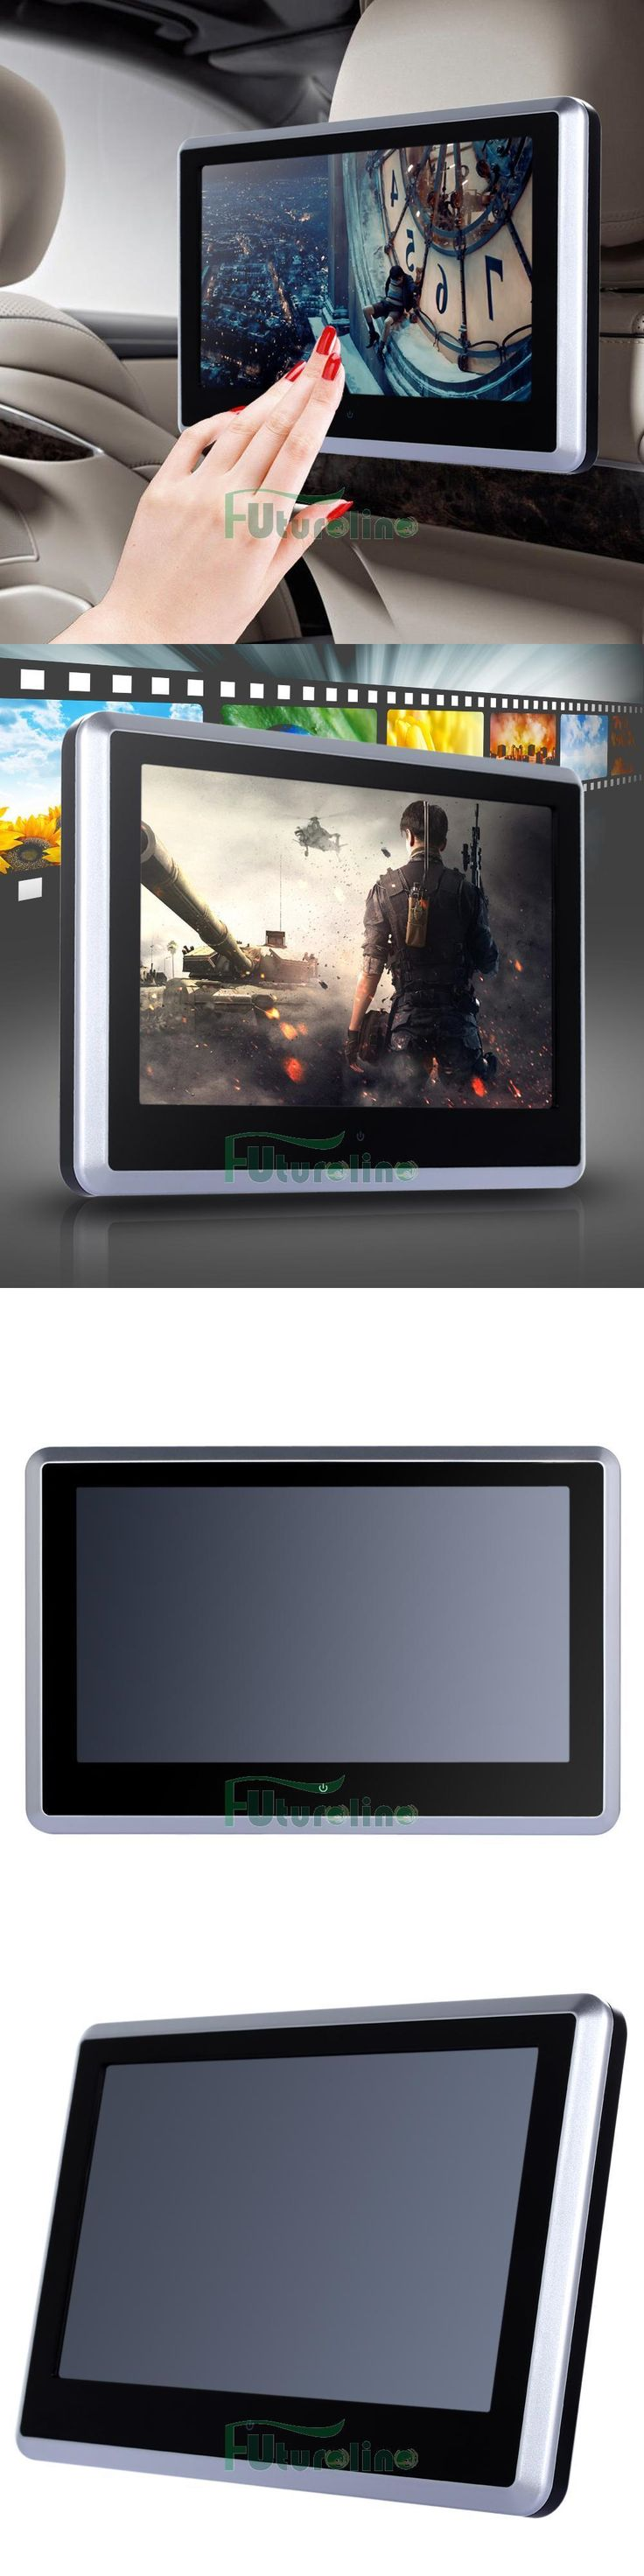 Car Monitors w Built-in Player: Hd 10.1 Touch Car Digital Lcd Headrest Monitor Mp5 Dvd/Usb Player Ir/Fm Game Tv -> BUY IT NOW ONLY: $96.99 on eBay!